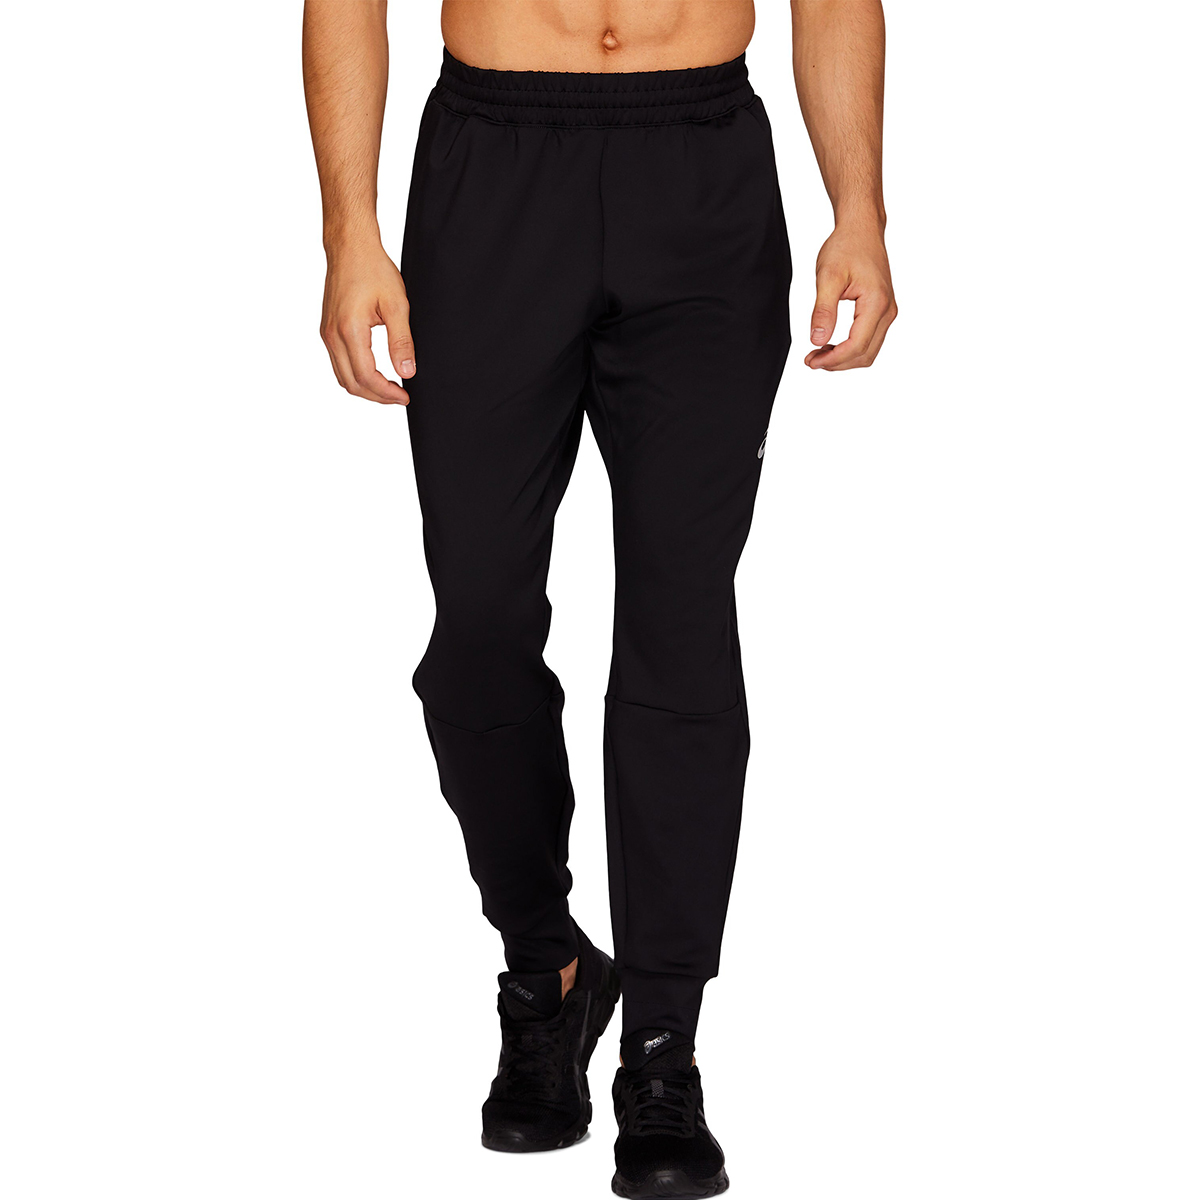 Asics Men's Thermopolis Joggers - Black, L